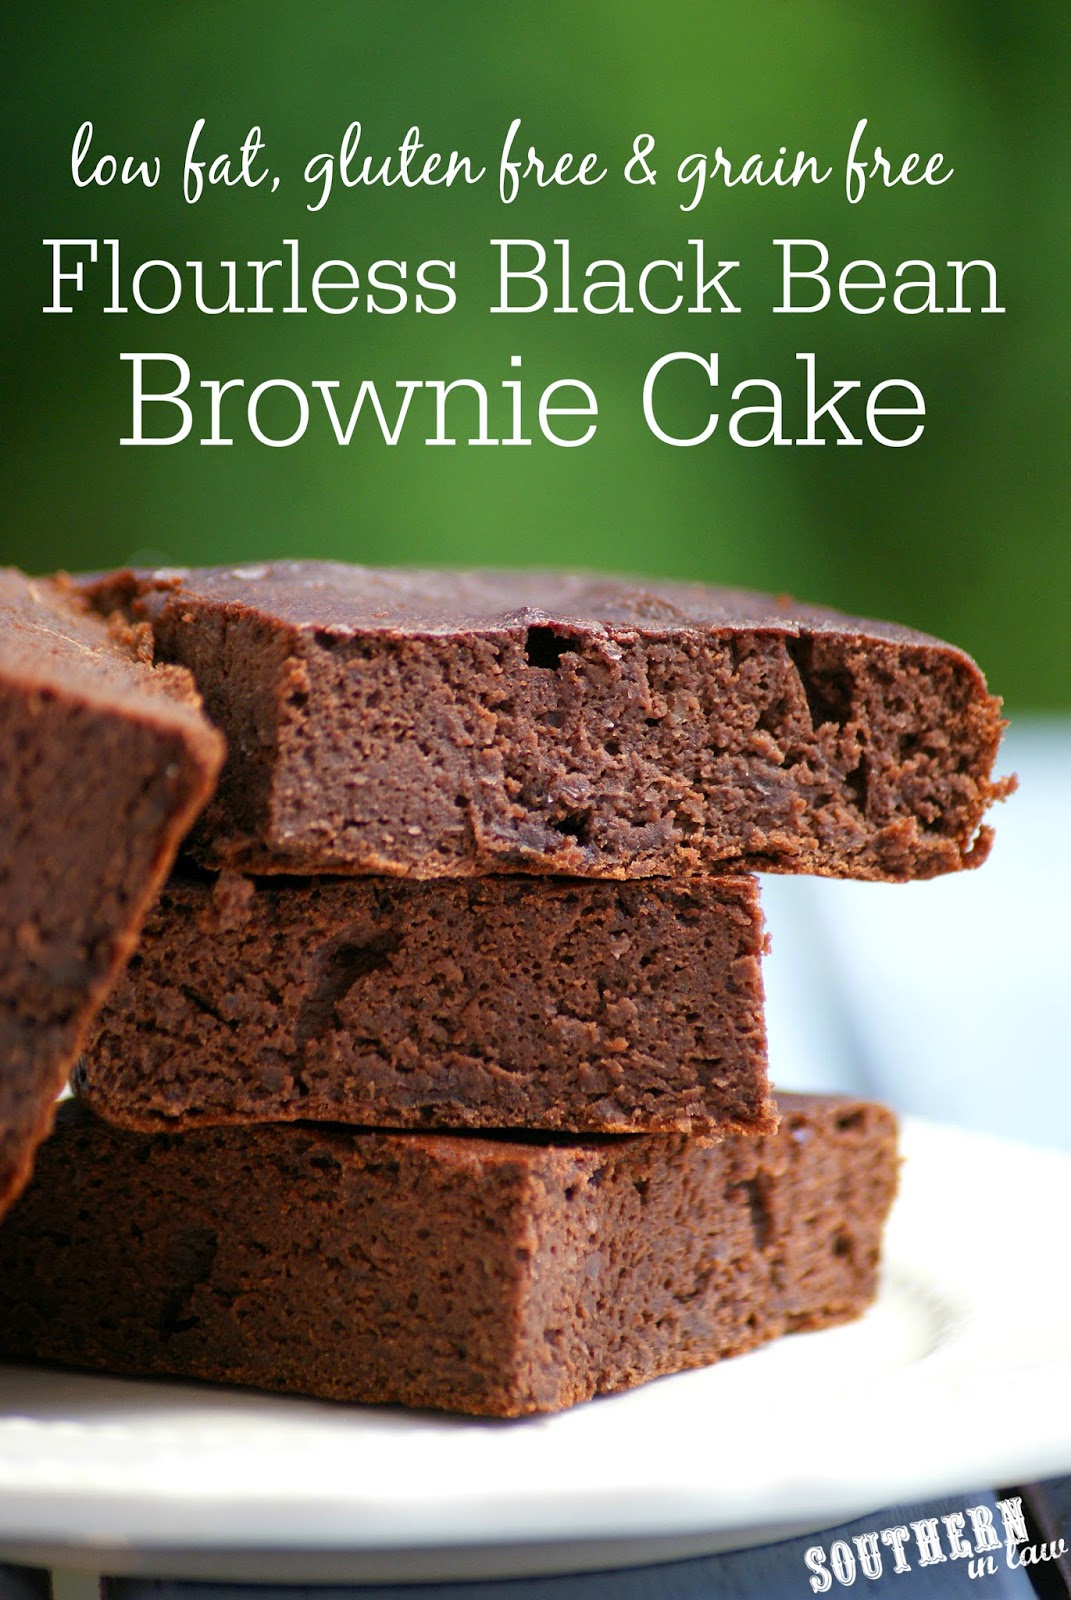 Healthy Gluten Free Black Bean Brownie Cake Recipe | low fat, gluten free, grain free, flourless, refined sugar free, clean eating friendly, low calorie brownie recipe